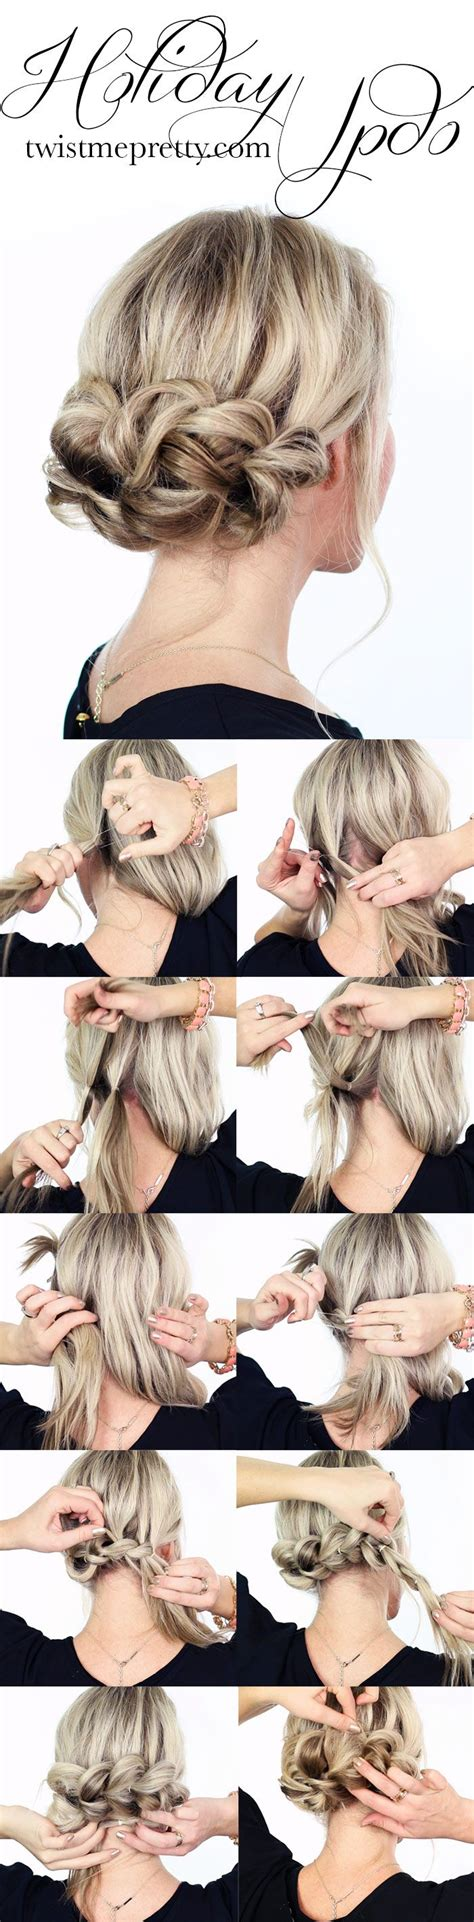 15 braided updo hairstyles tutorials 15 easy hairstyles for lazy with tutorials